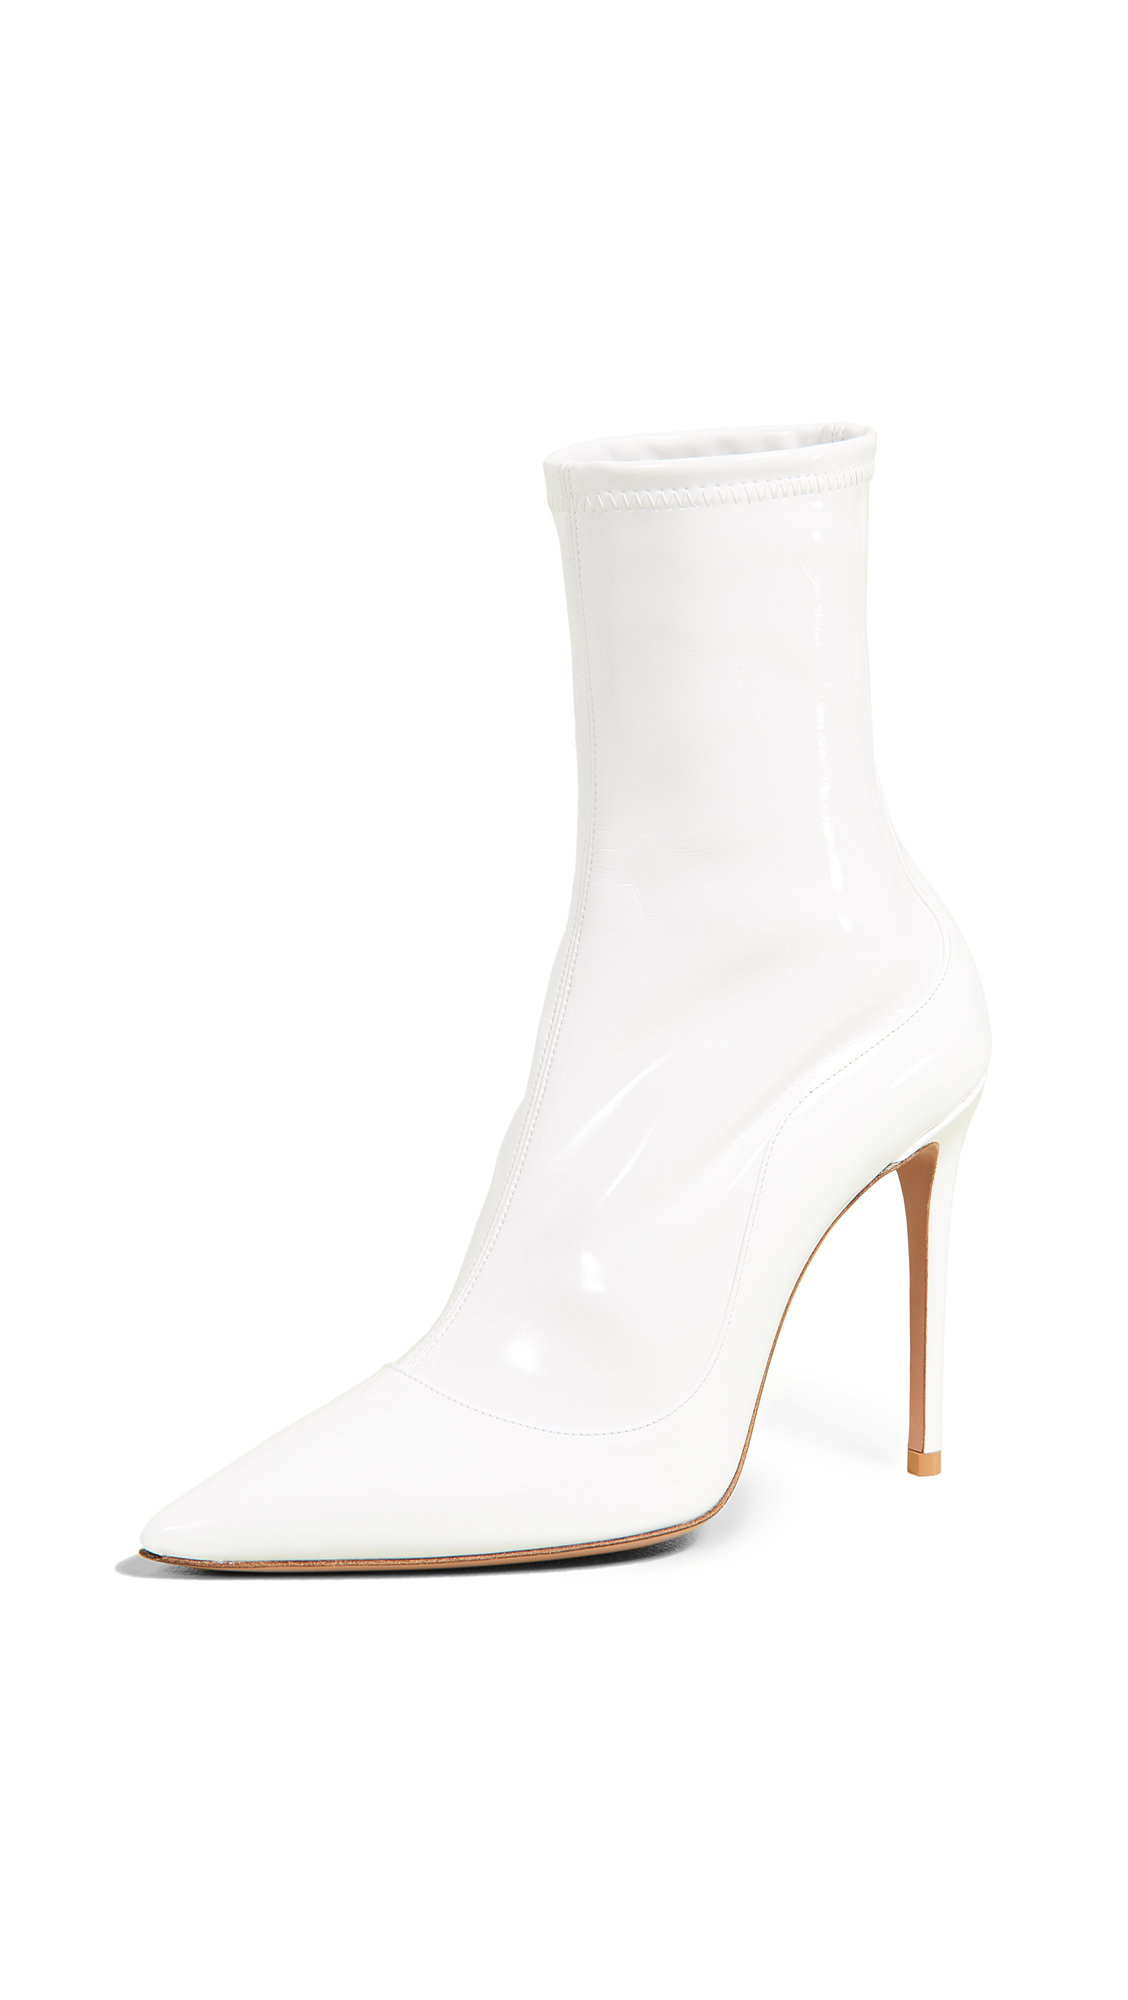 Aquazzura Zen 105 Booties - White